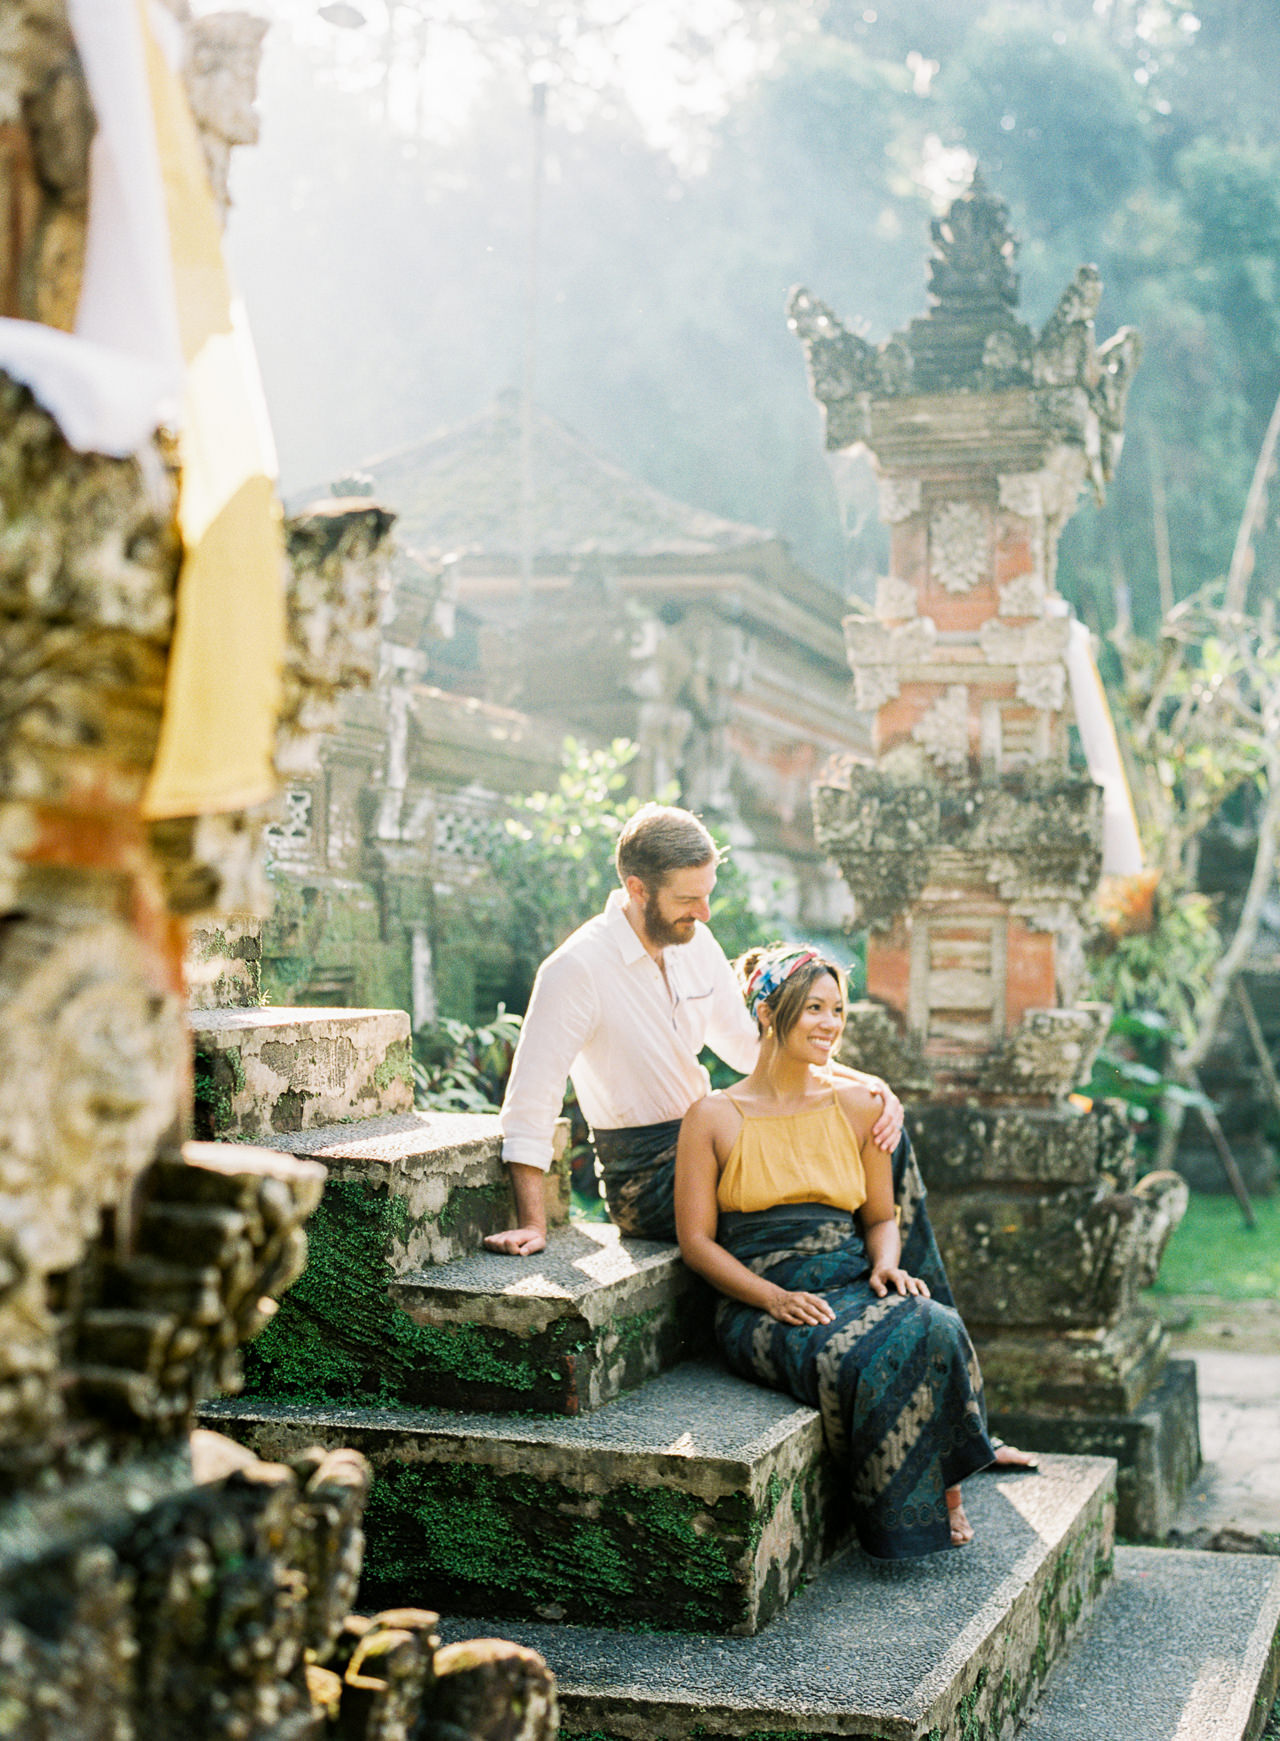 S&M: Bali Wedding Anniversary Photography 10